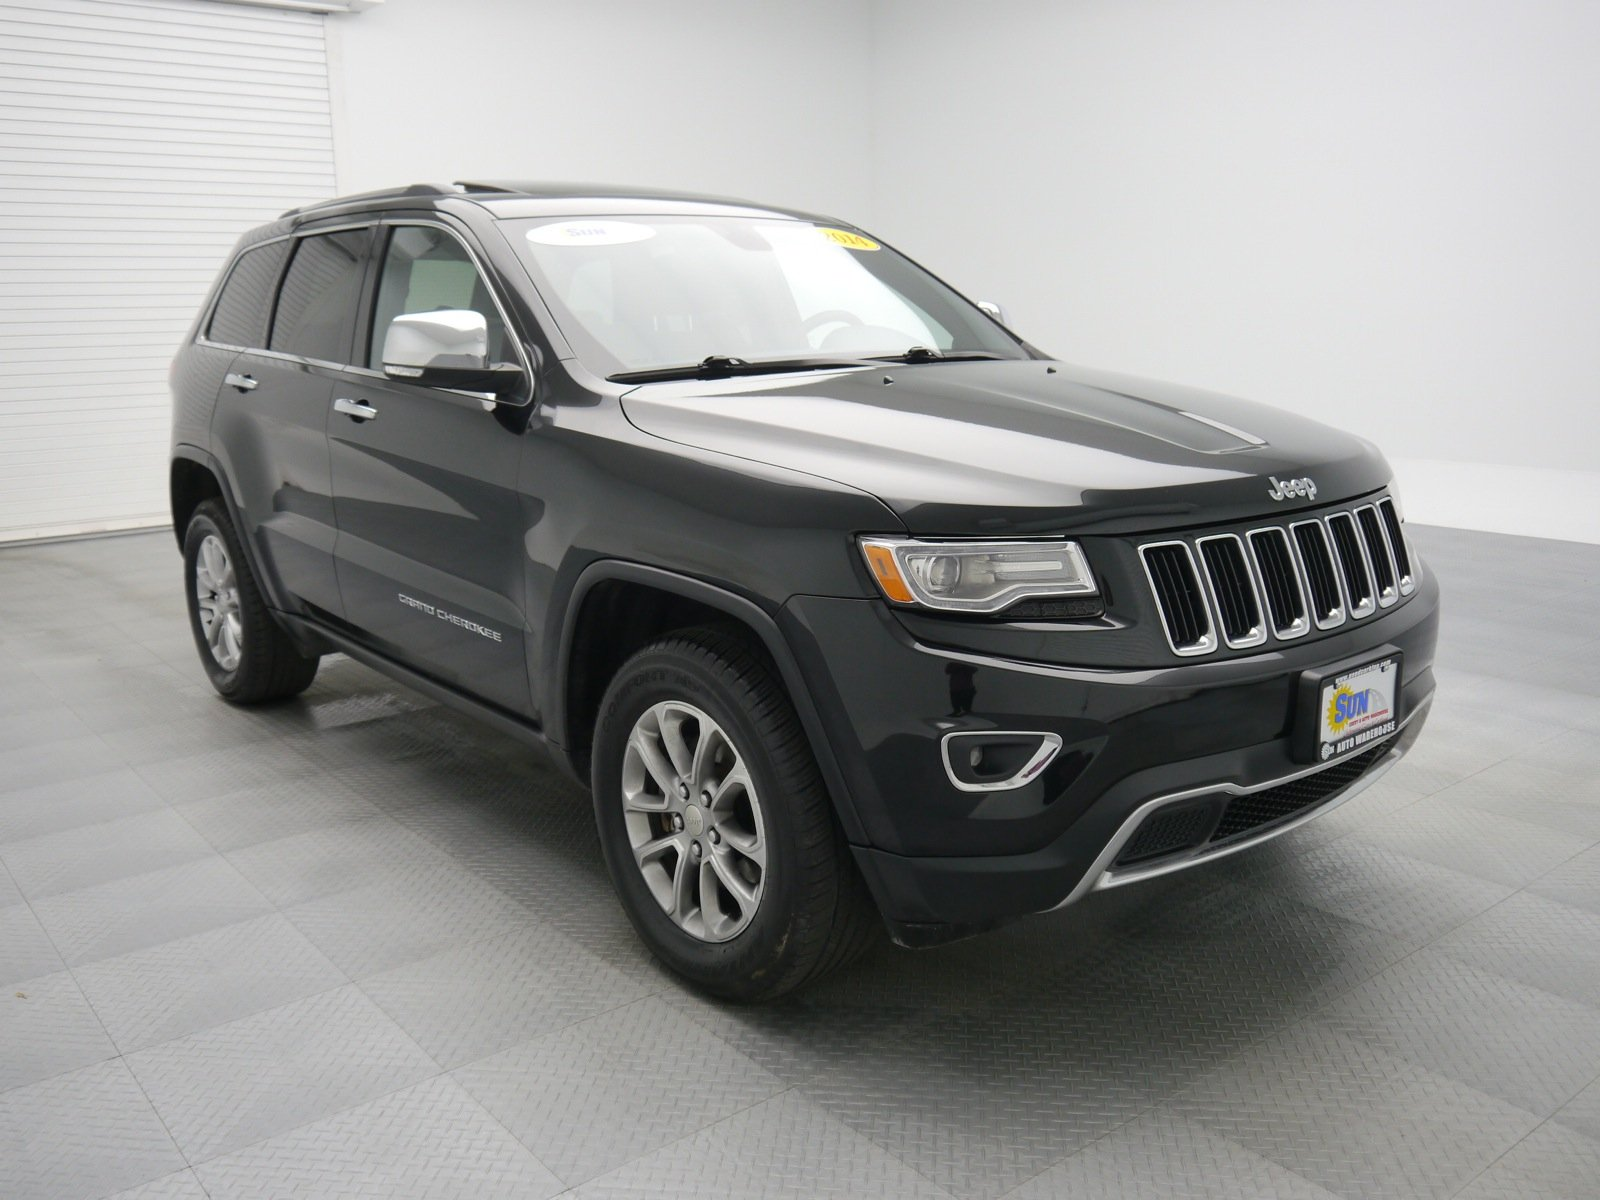 pre owned 2014 jeep grand cherokee limited sport utility cicero wt31829a cicero ny used car king. Black Bedroom Furniture Sets. Home Design Ideas